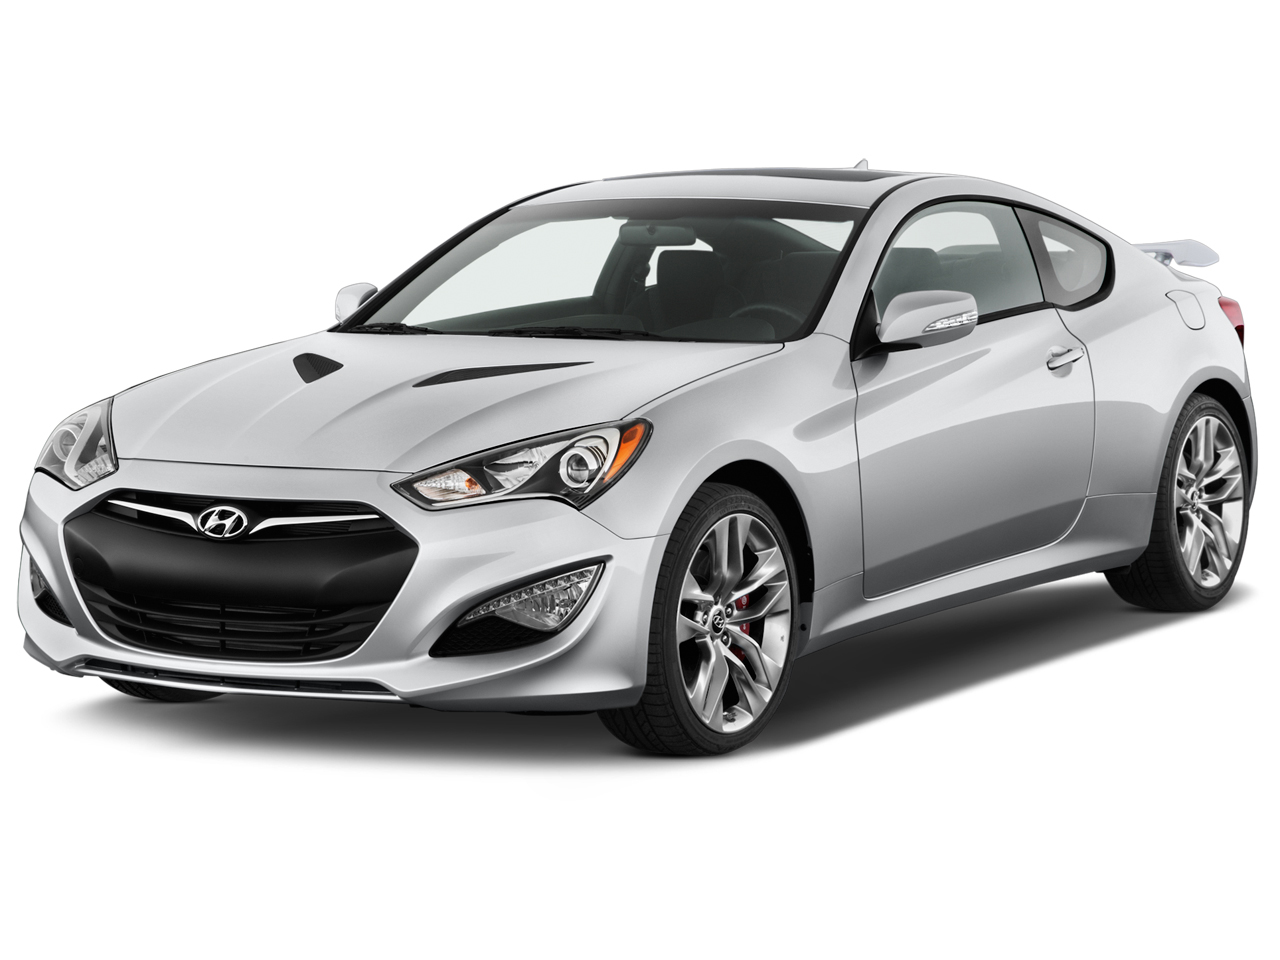 2016 hyundai genesis coupe review ratings specs prices and photos the car connection. Black Bedroom Furniture Sets. Home Design Ideas